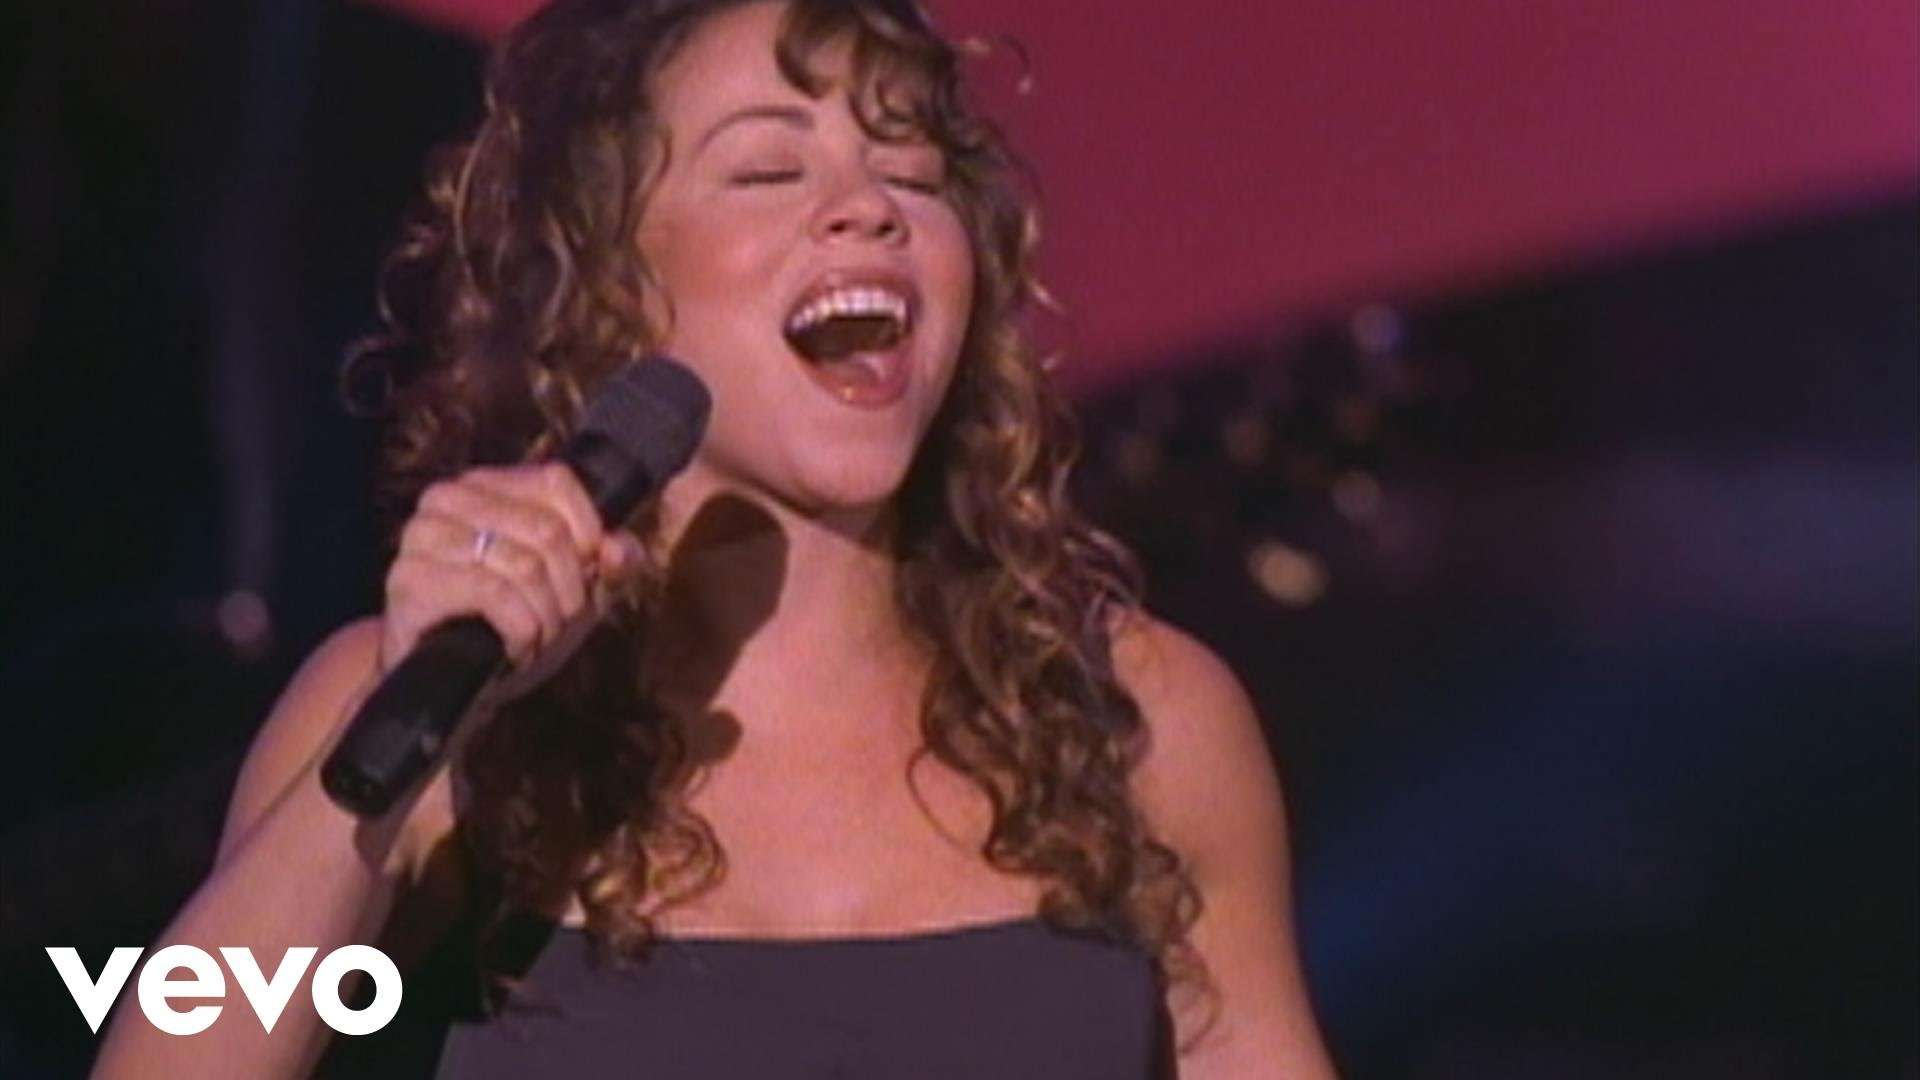 Mariah Carey - Emotions (From Mariah Carey (Live)) - YouTube